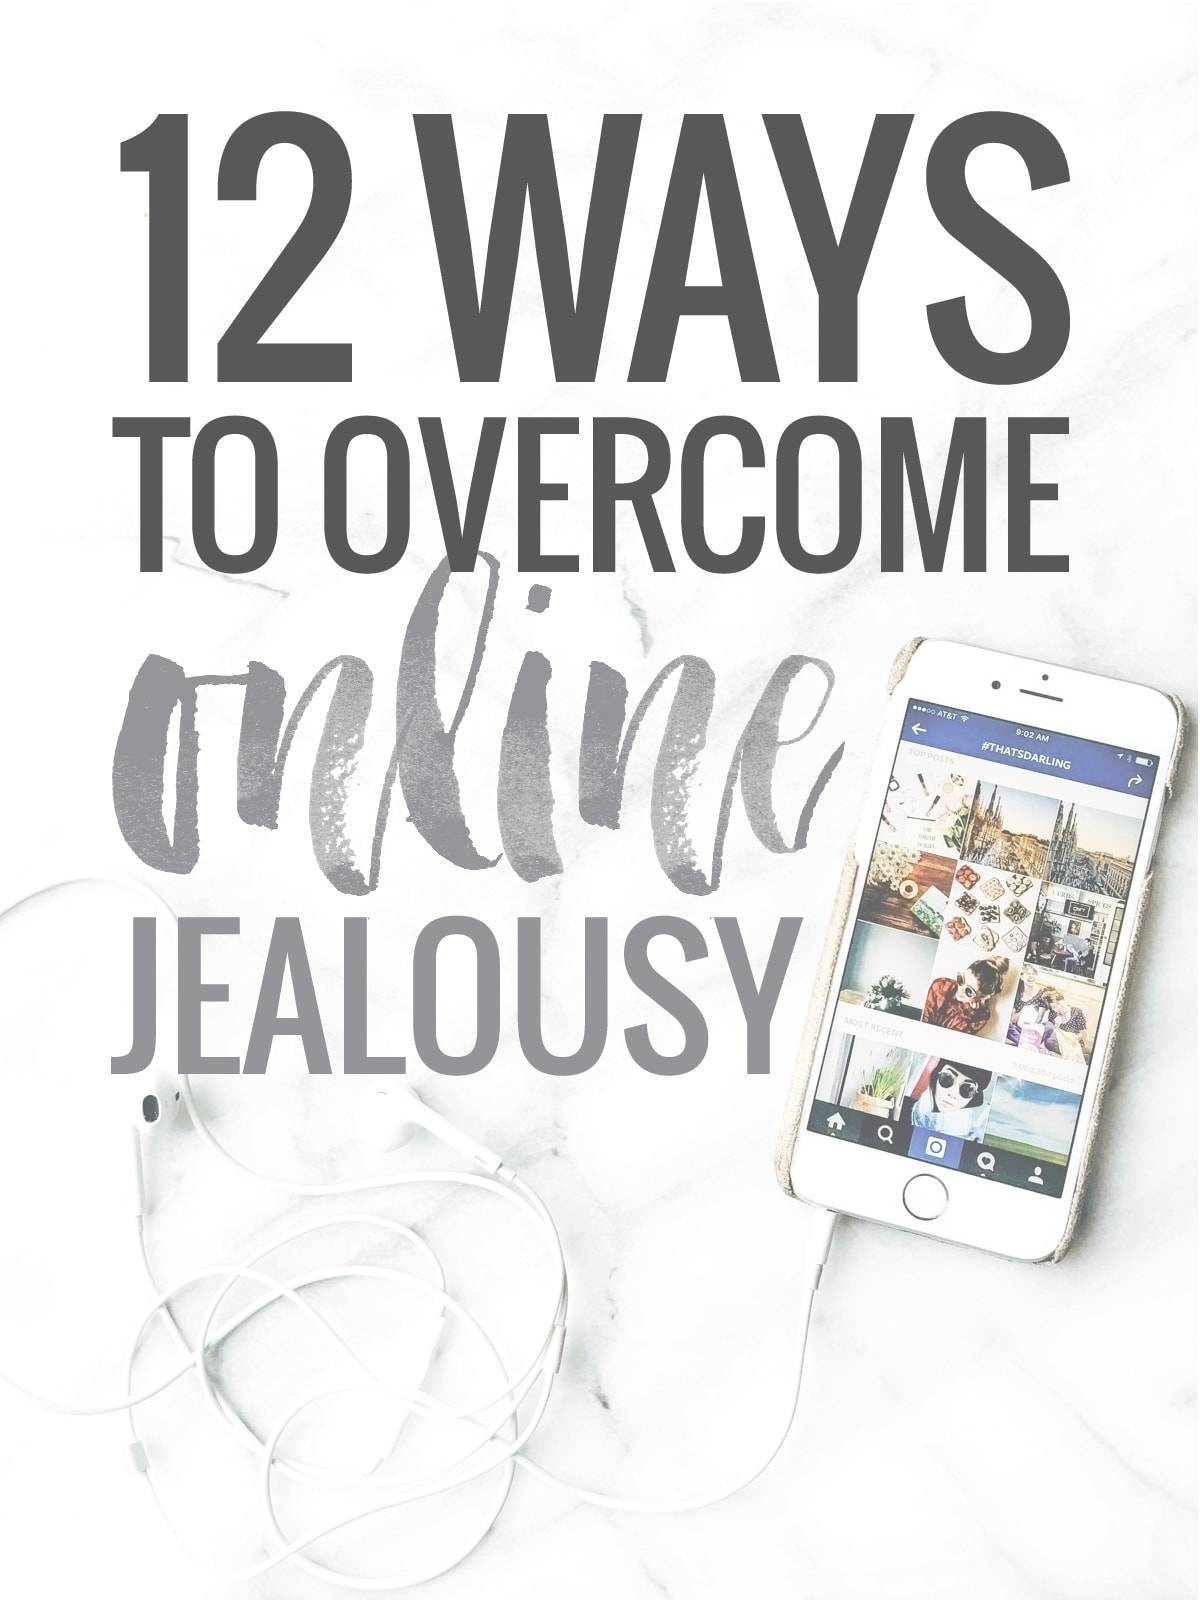 Feeling Jealous on the Internet    and 12 Ways to Make it